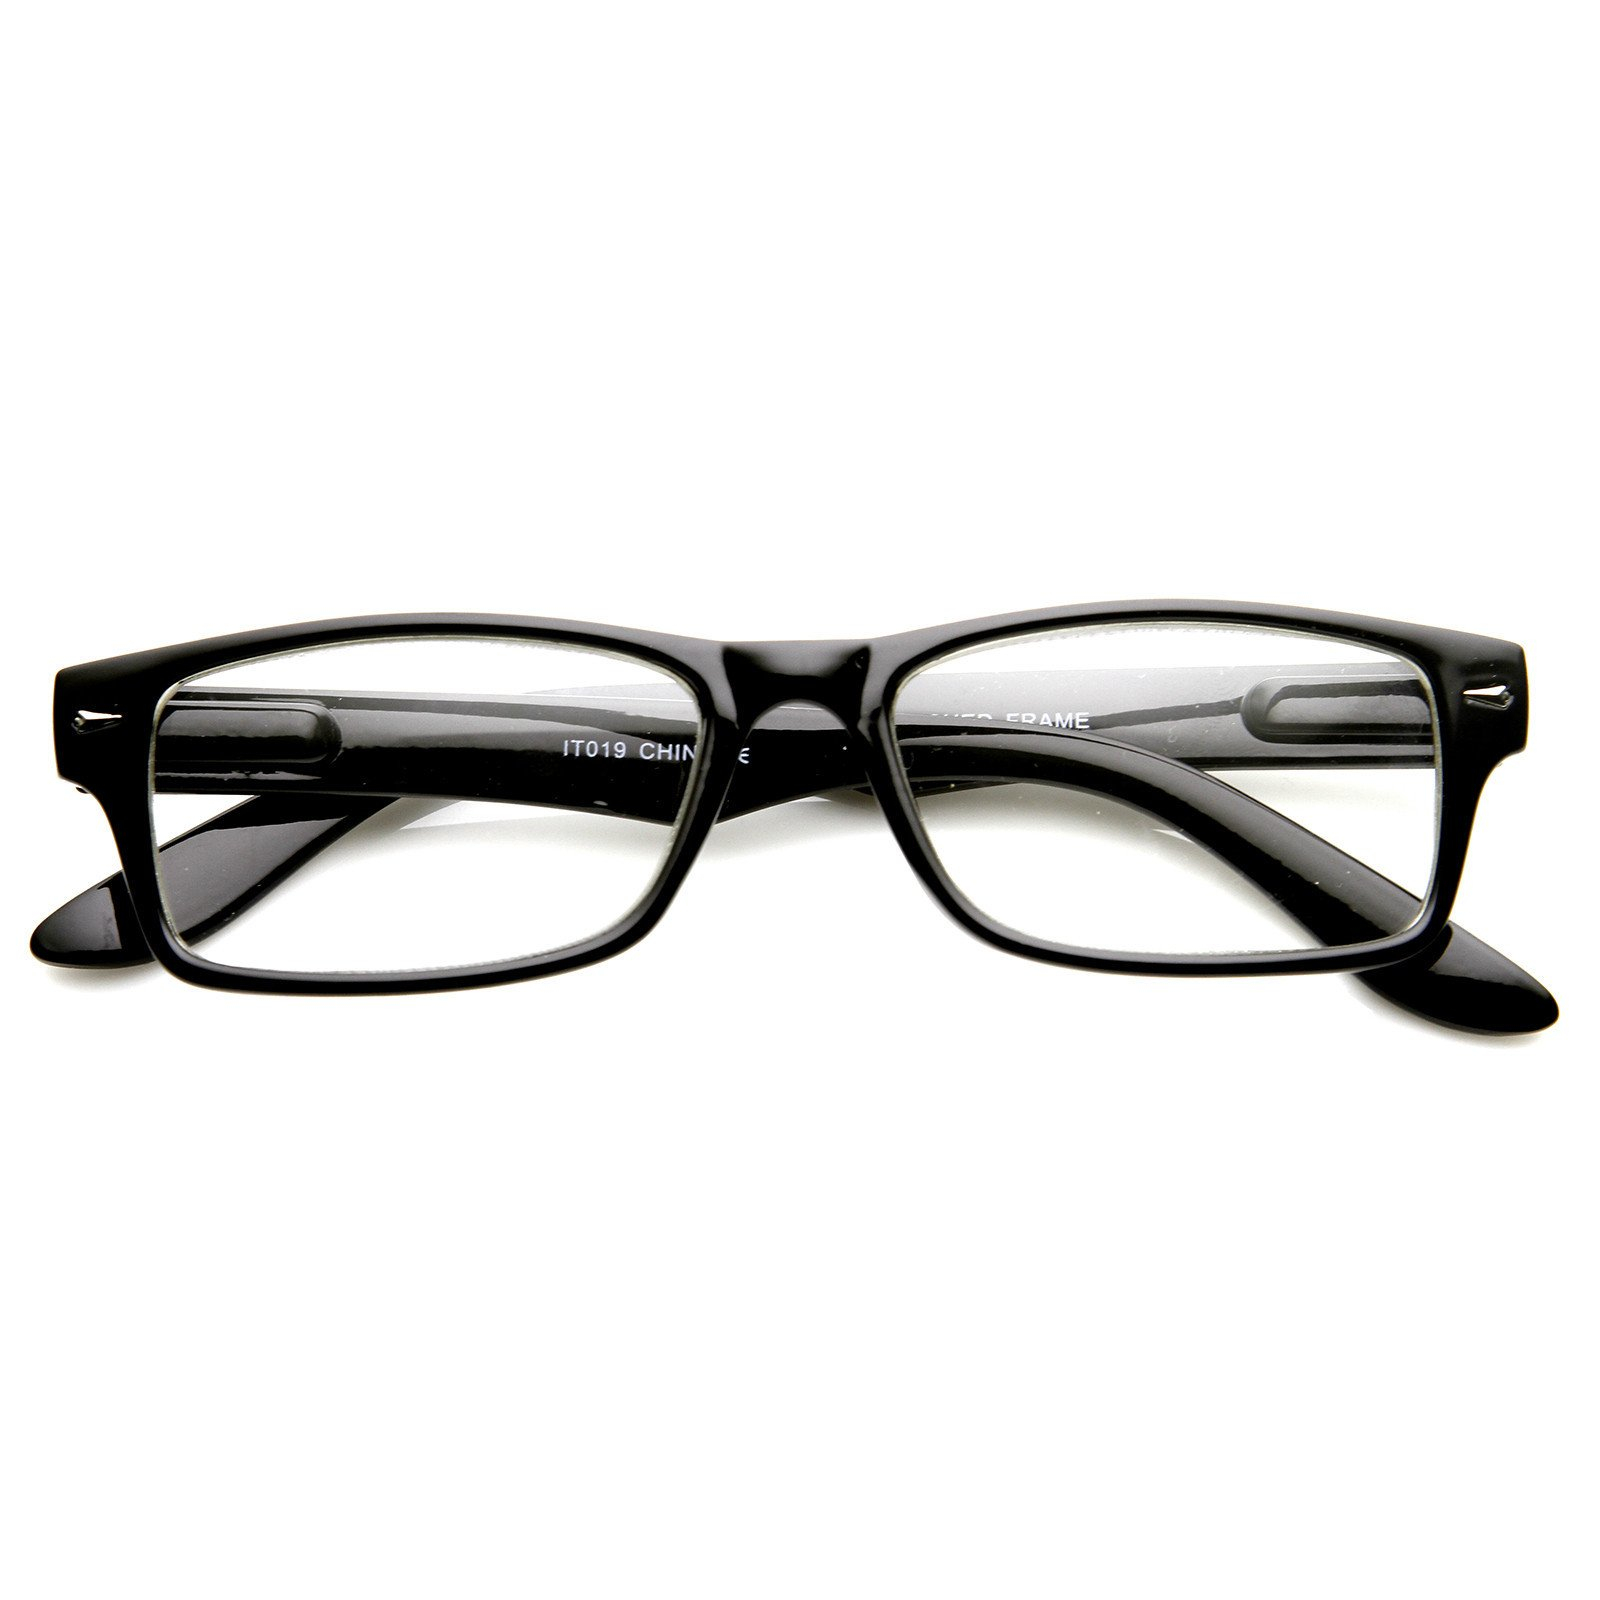 Image of New Optical Quality Frame Clear Lens Glasses 8715